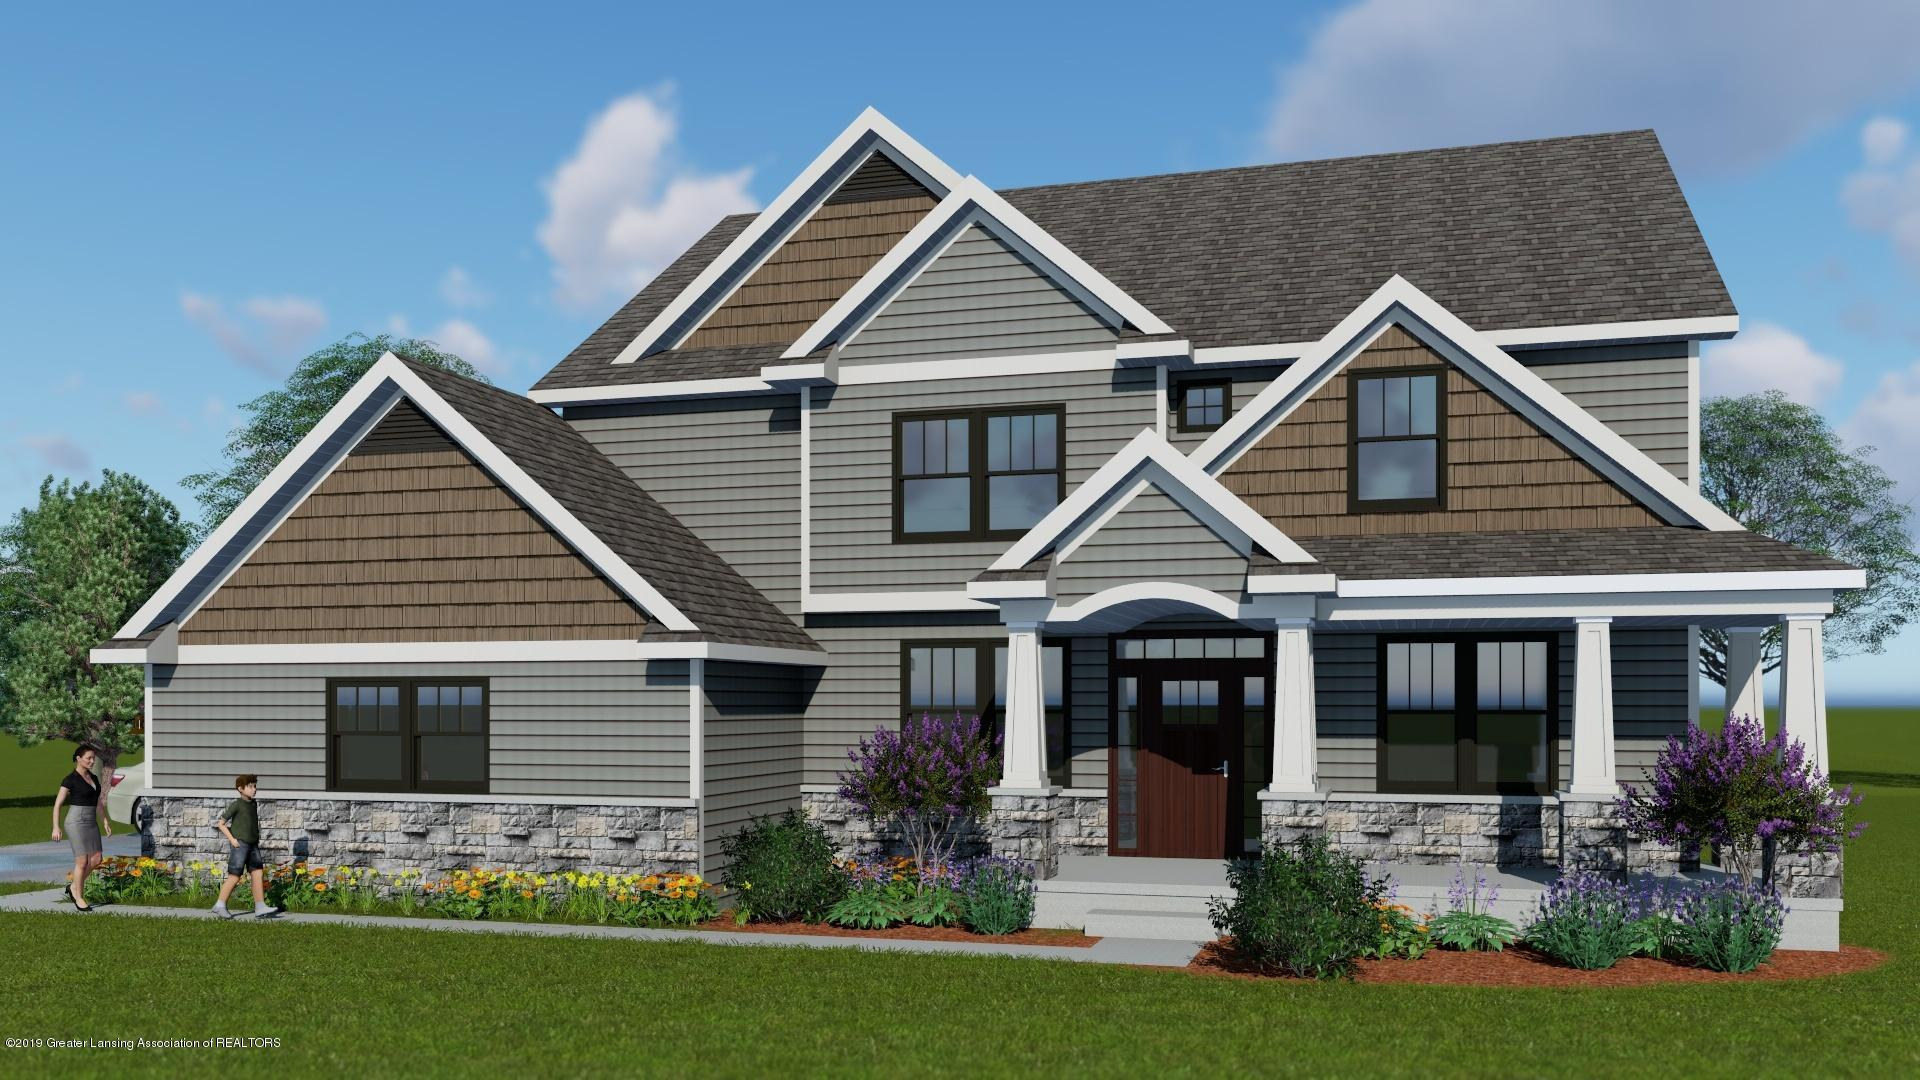 6096 Sleepy Hollow Ln - SR56 render2 - 1